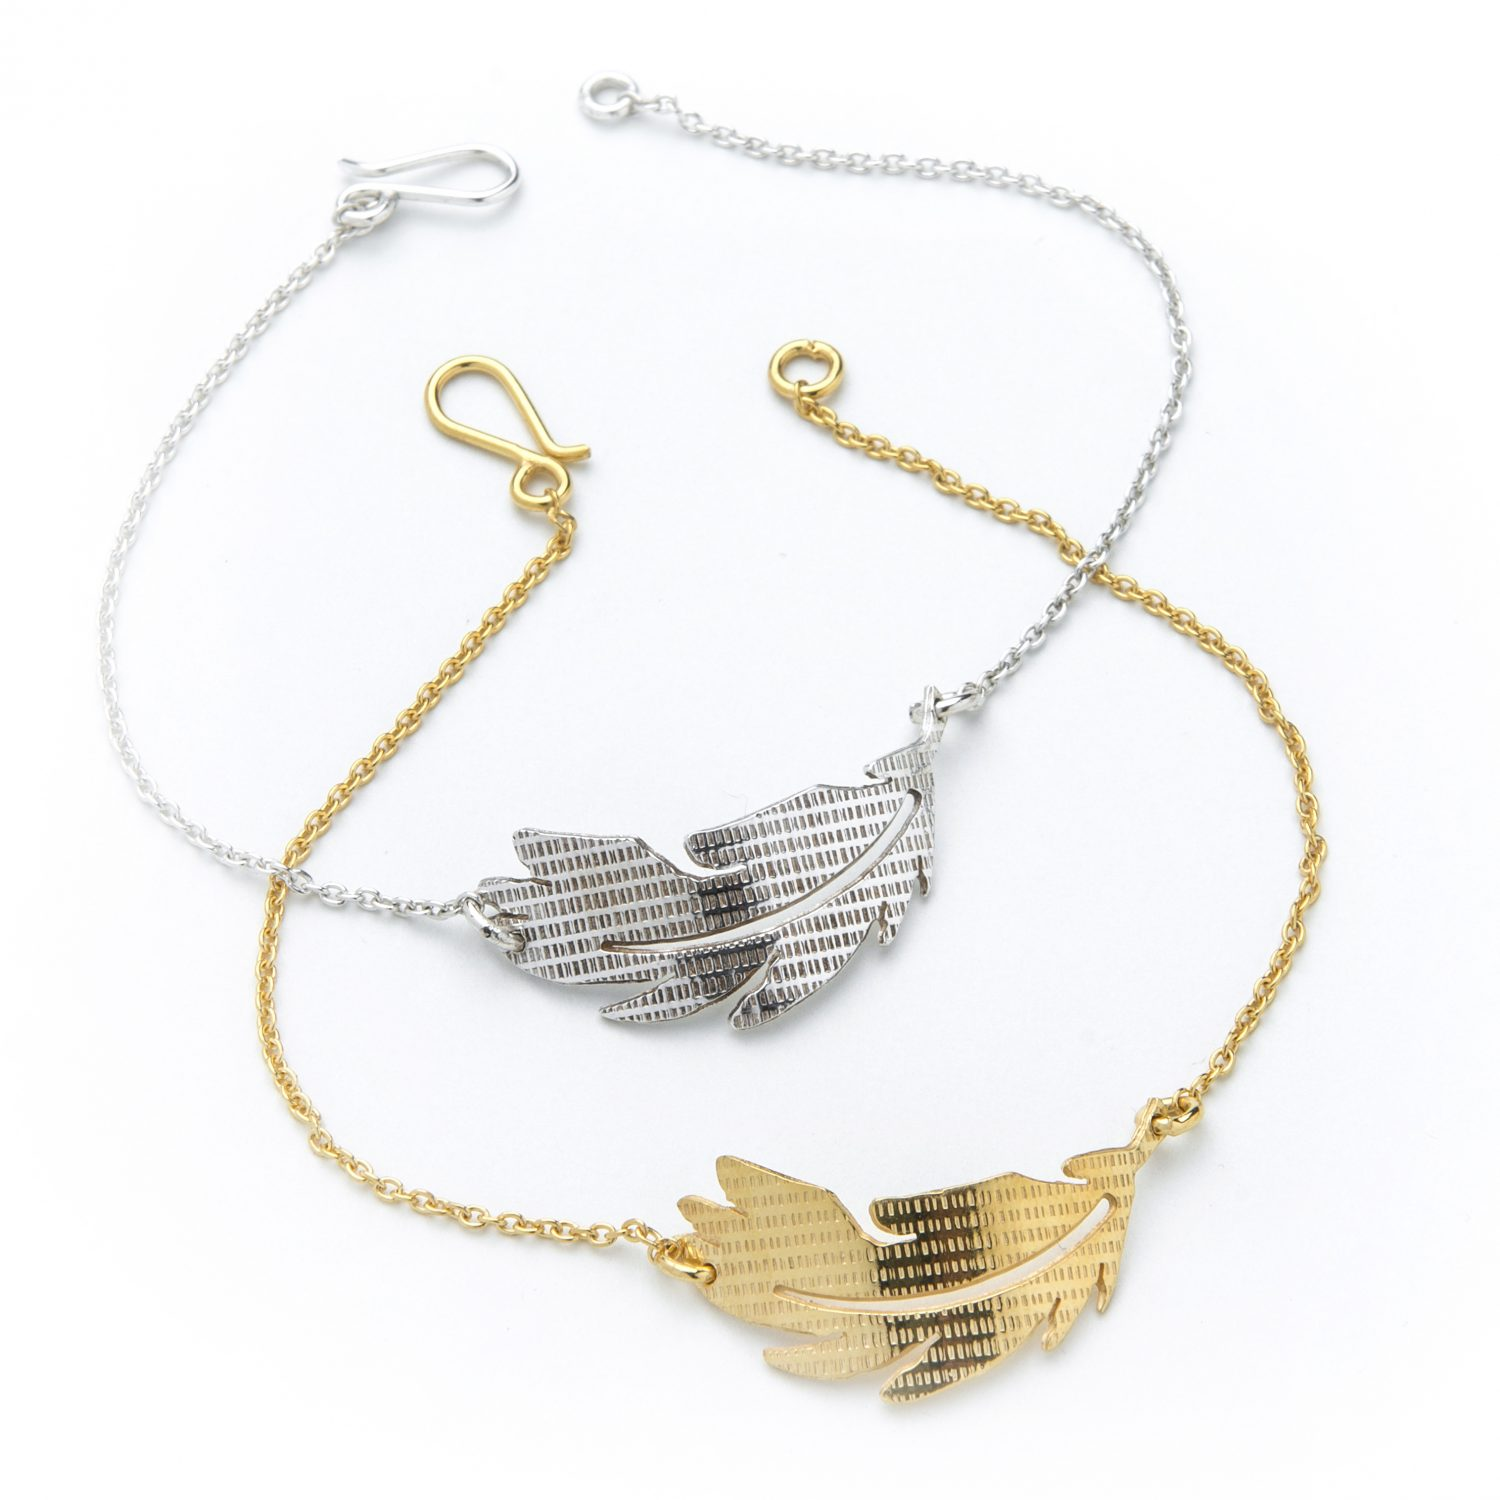 Silver and Gold textured feather bracelet